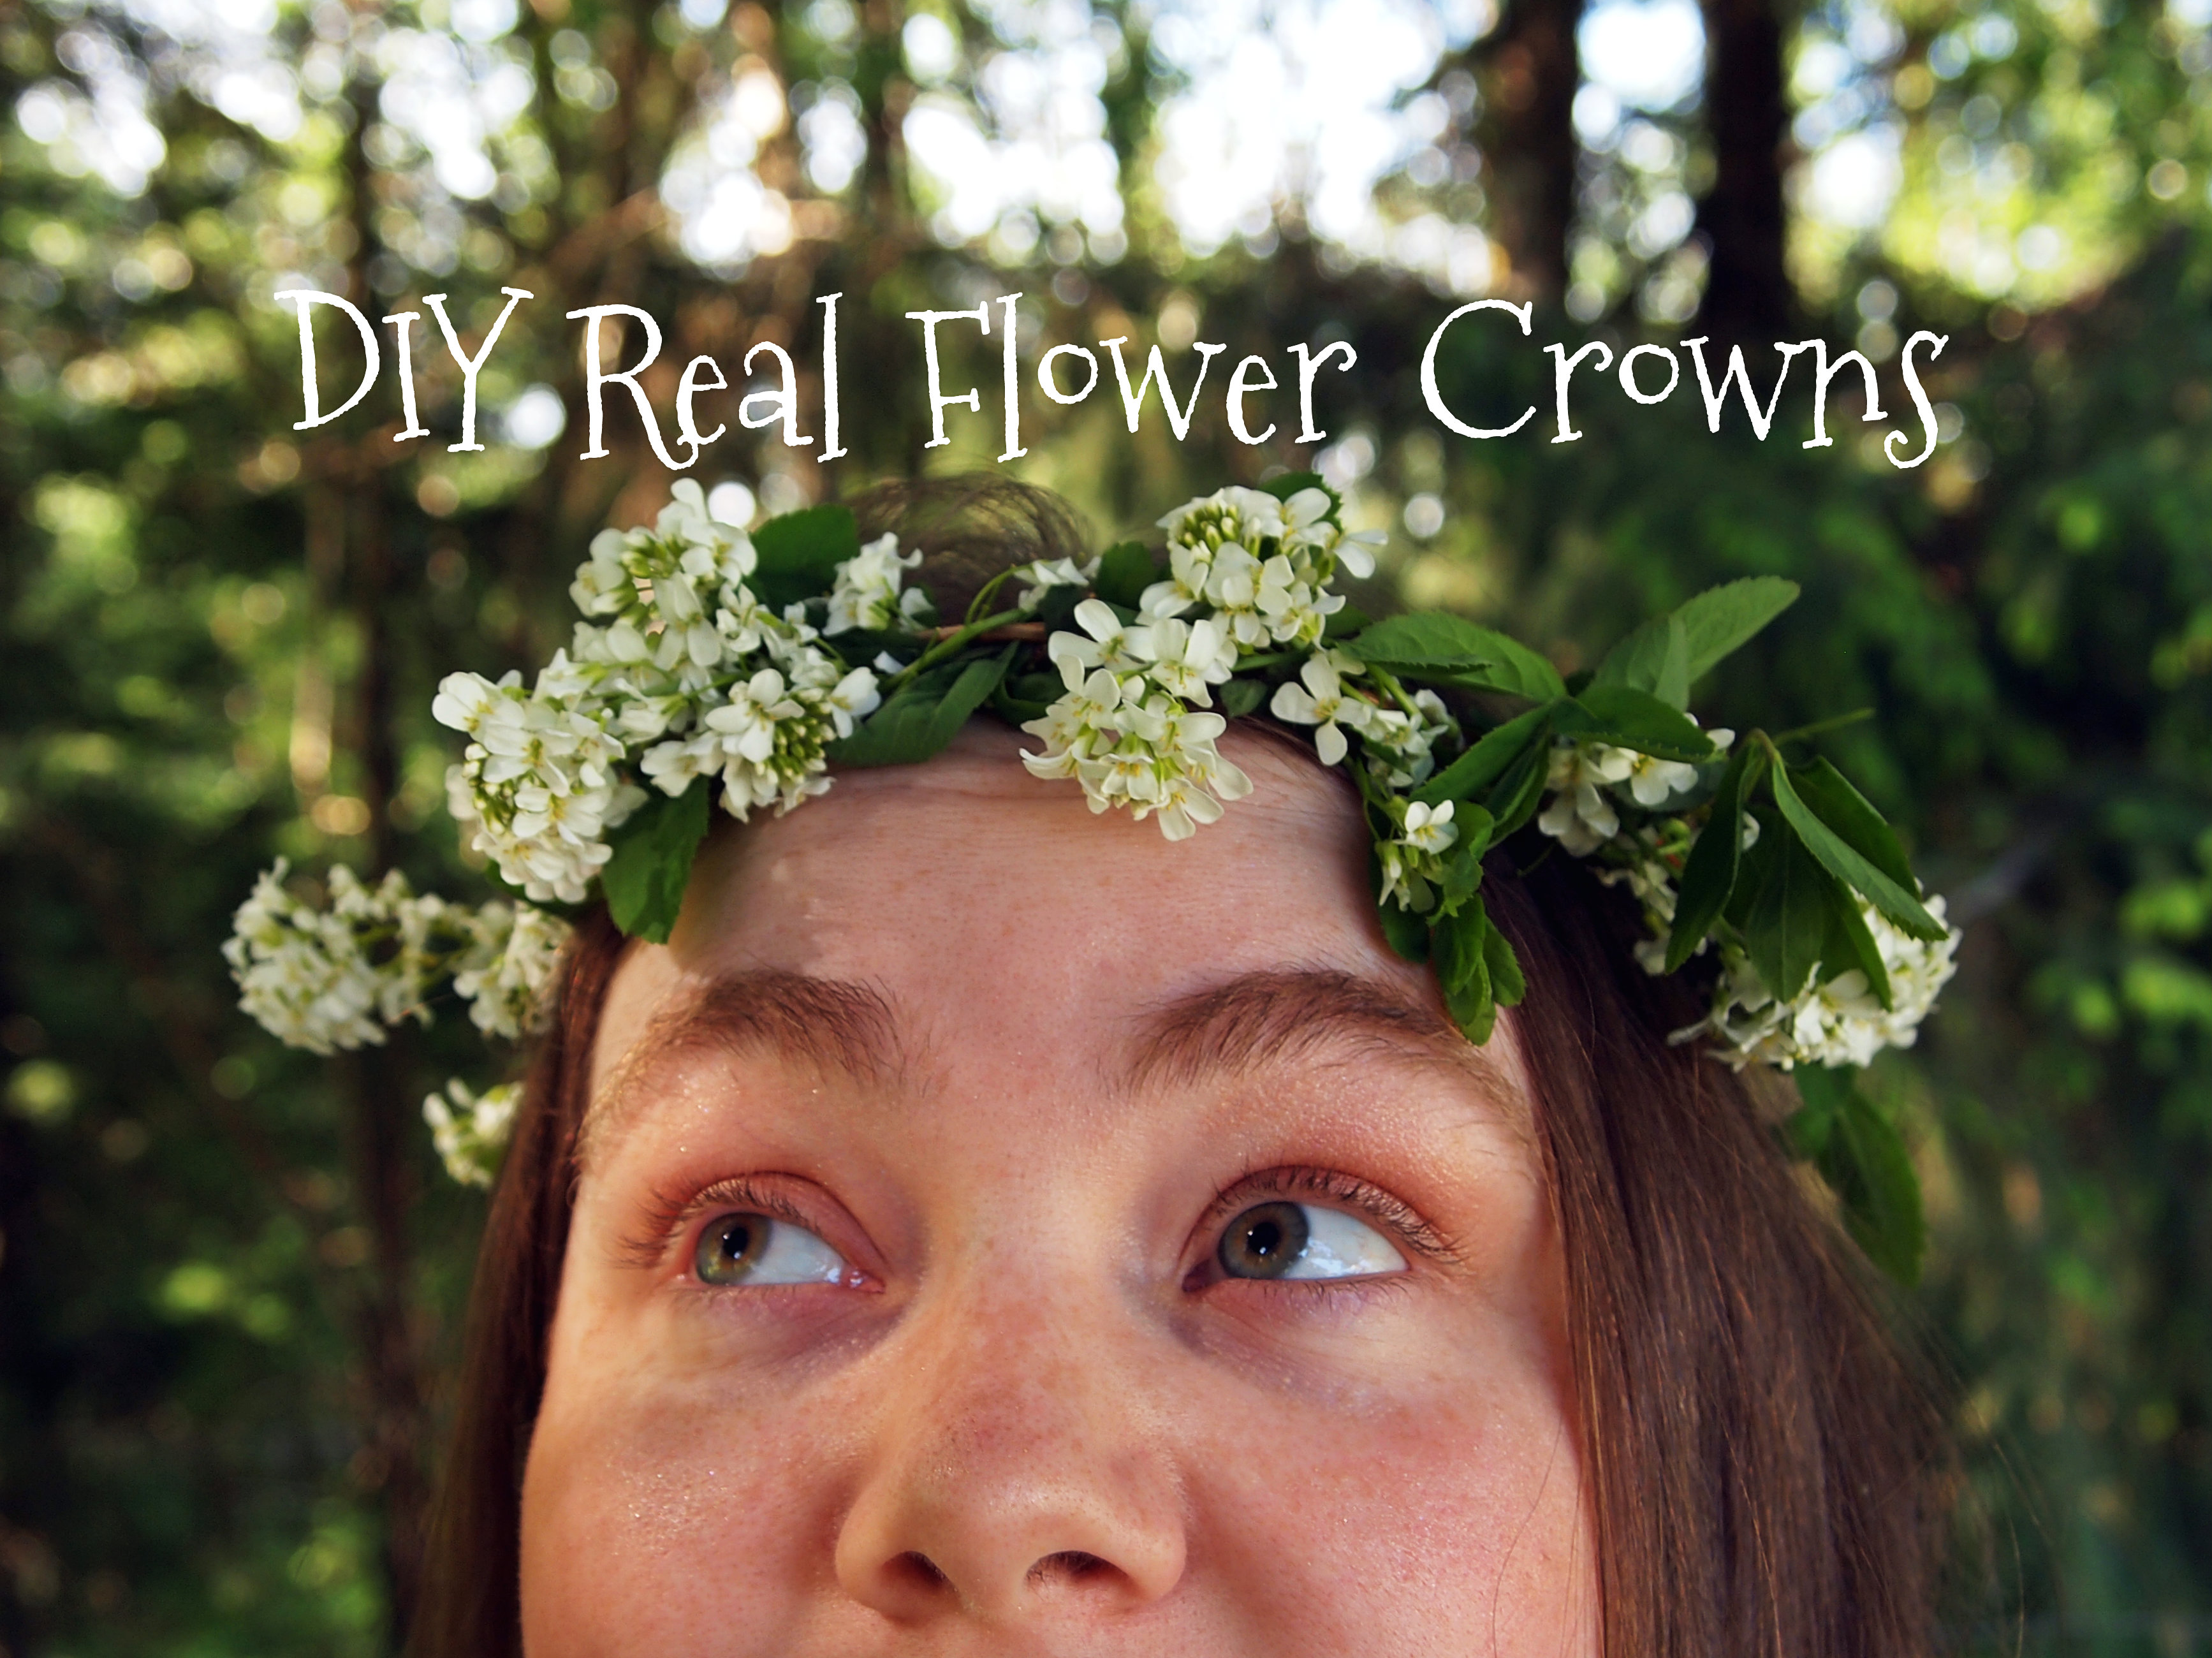 Diy real flower crowns 5 steps with pictures picture of diy real flower crowns izmirmasajfo